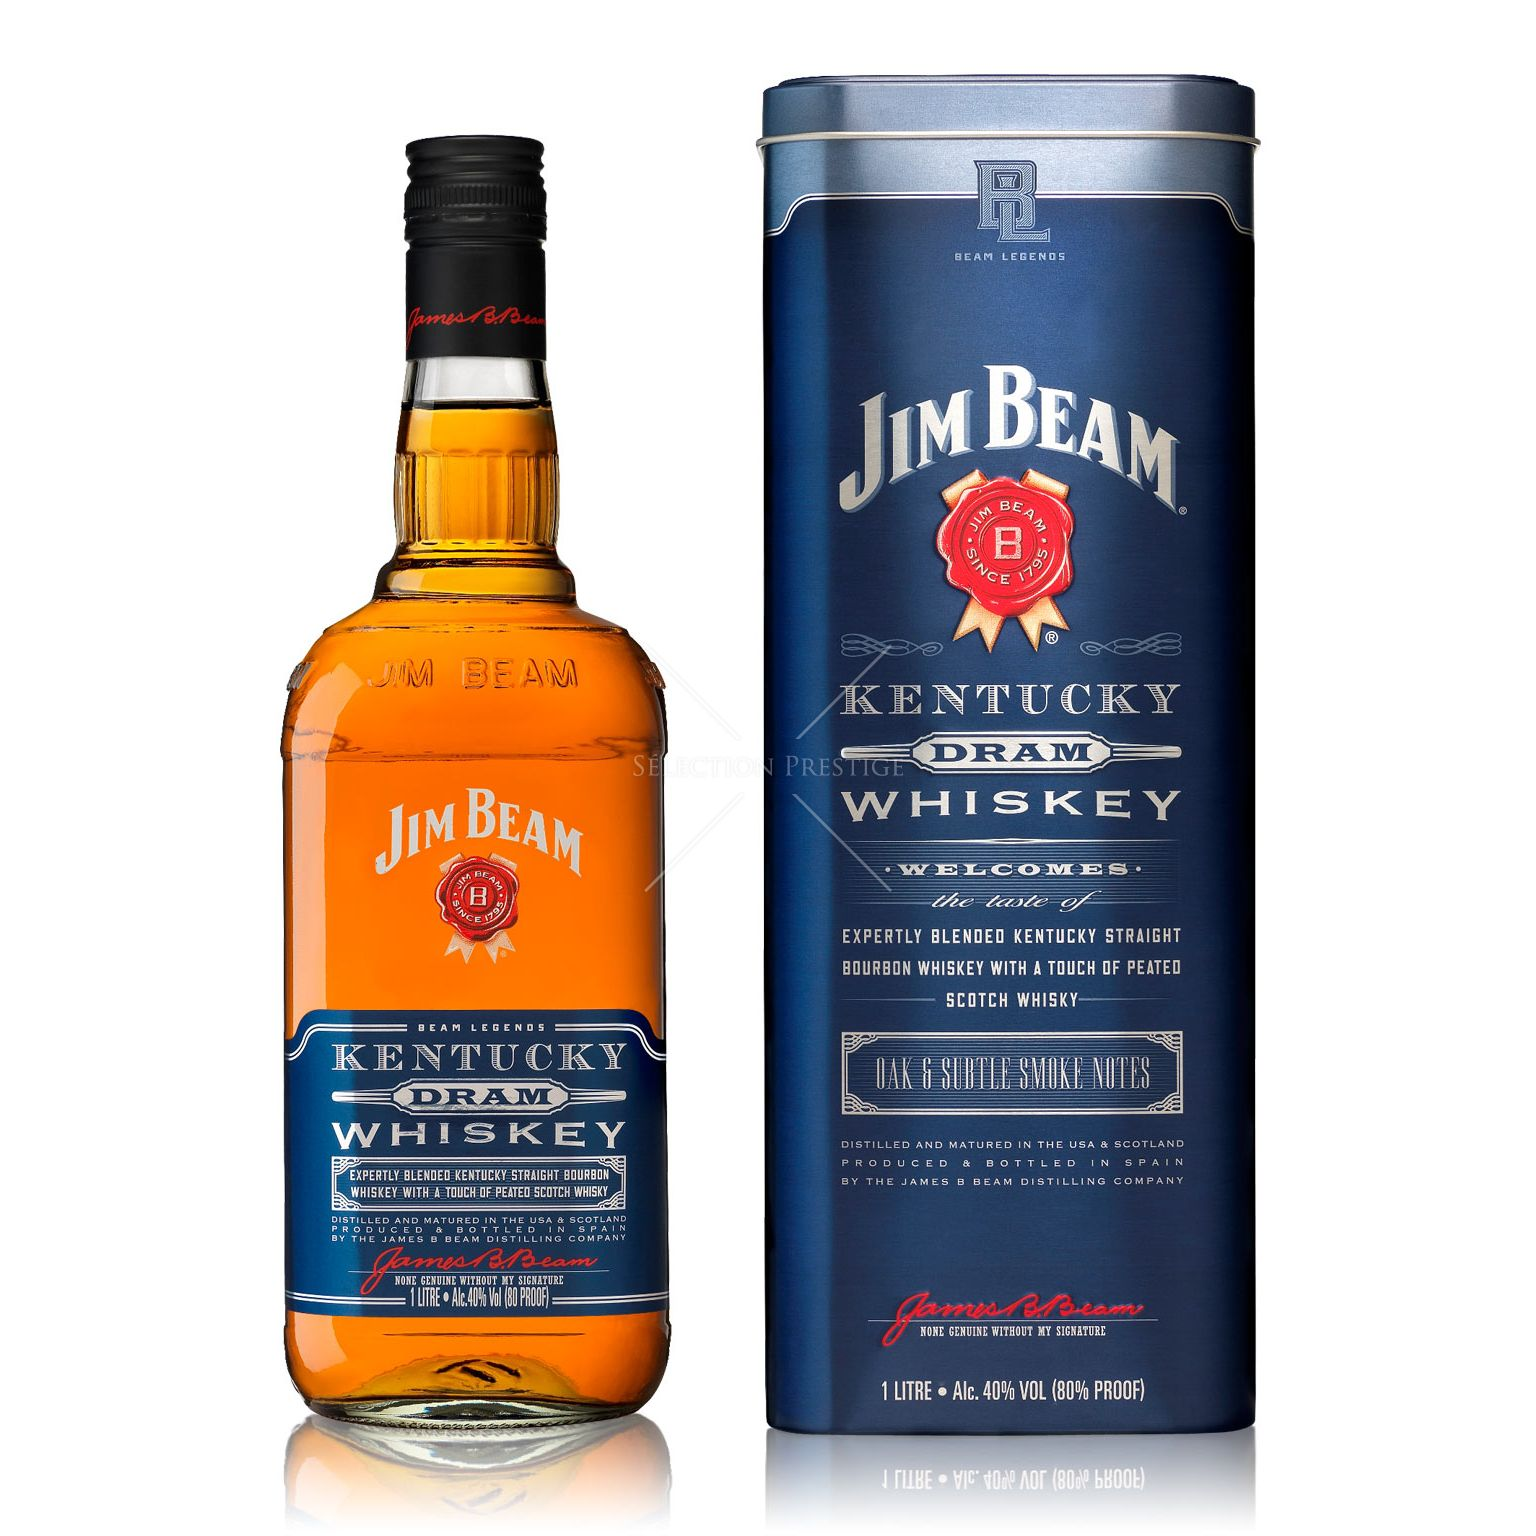 Jim Beam Kentucky Dram Whiskey 1.0L (40% Vol.)